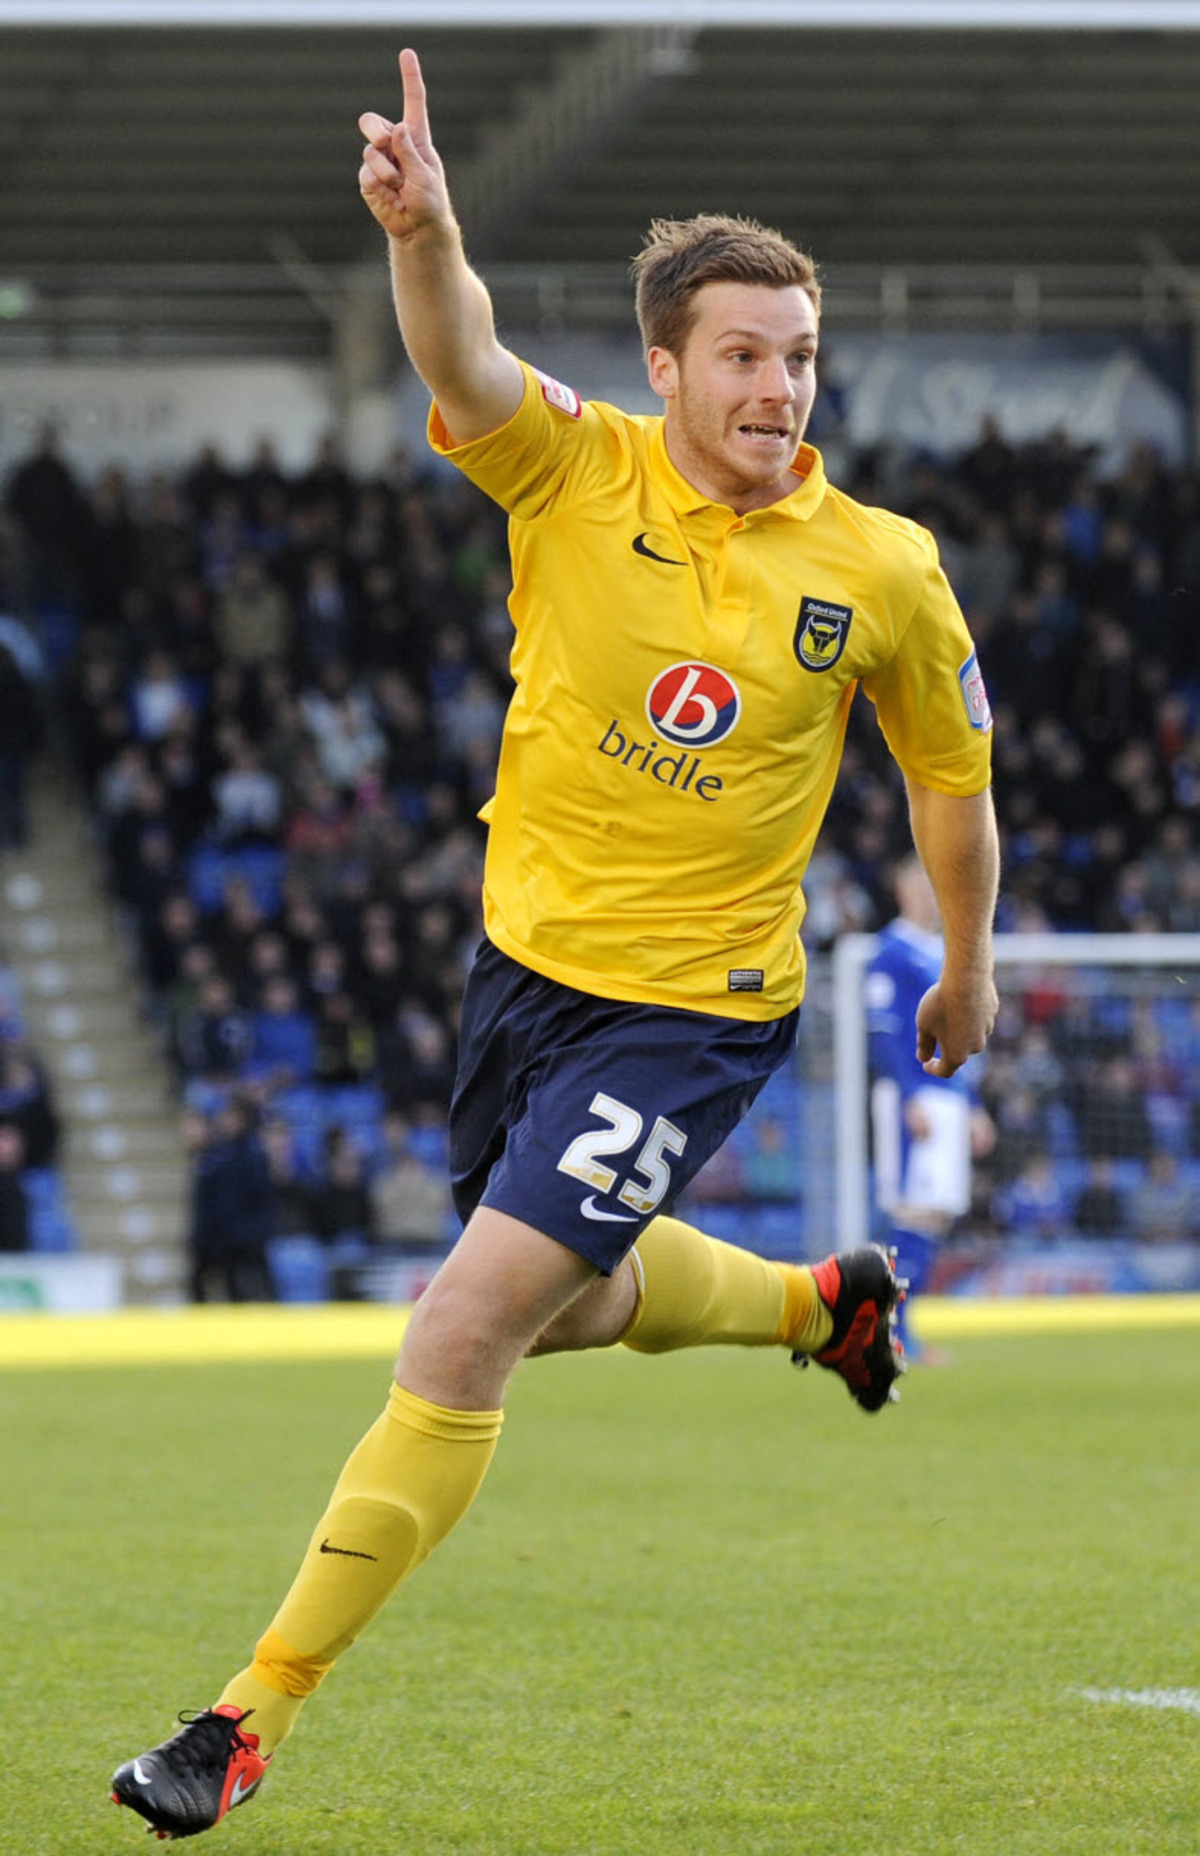 Johnny Mullins, pictured   celebrating his goal at Chesterfield in November last year, is returning for a second spell at Oxford United